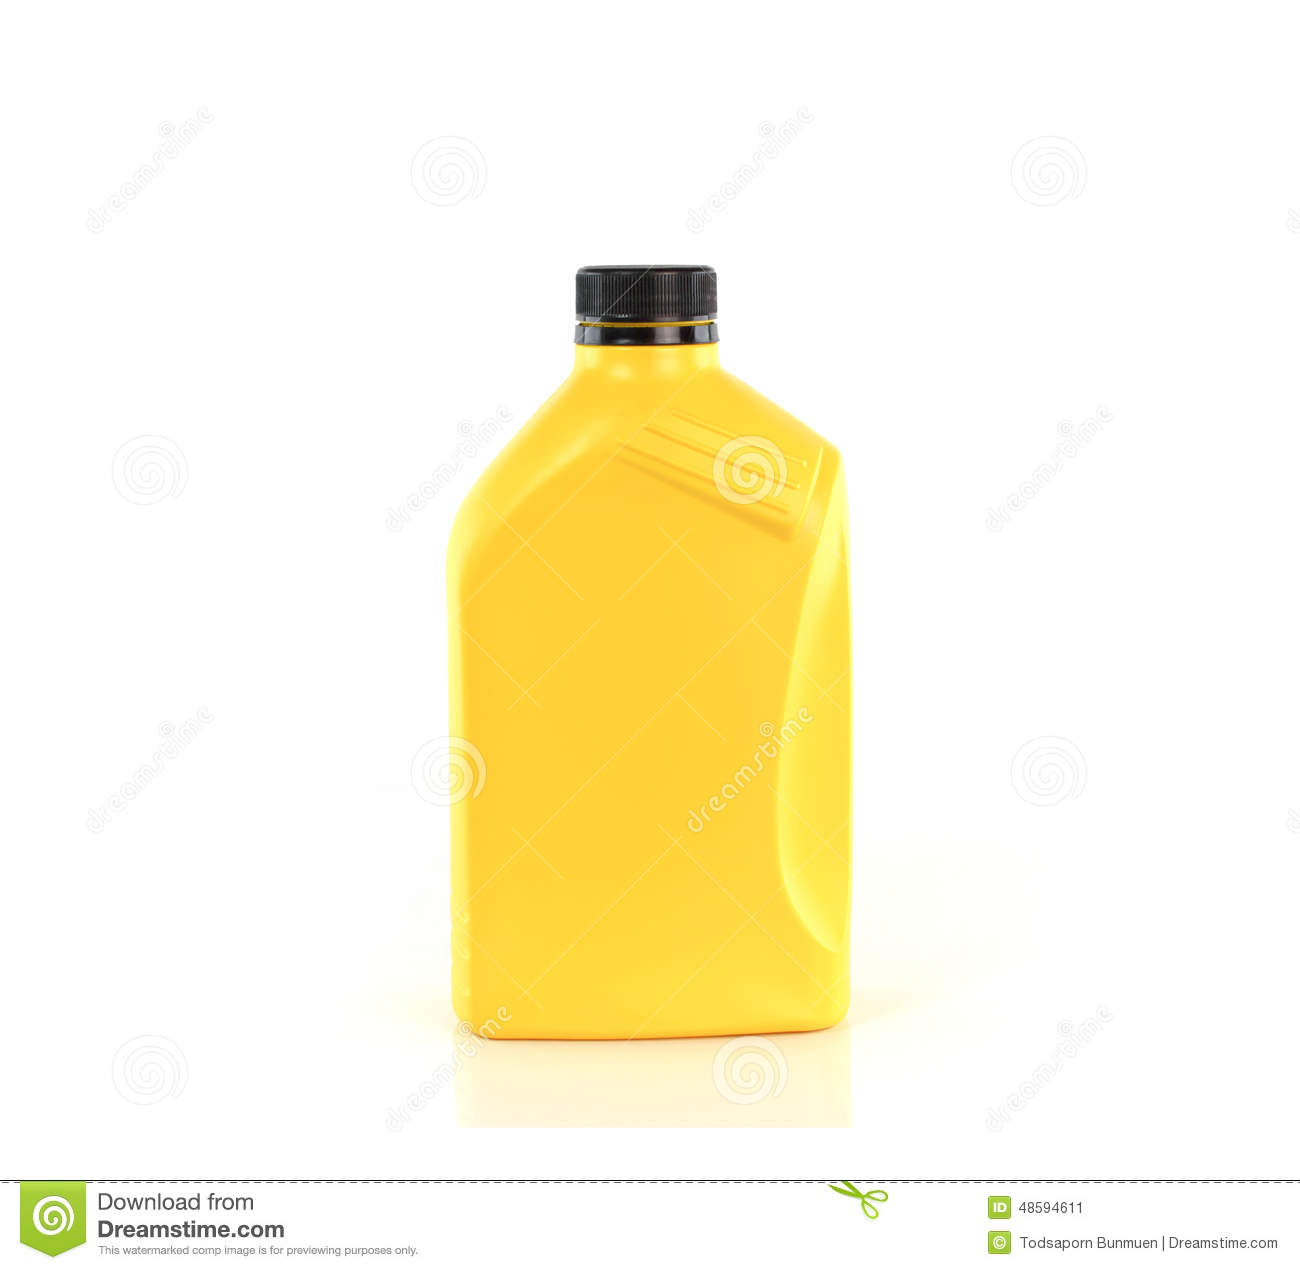 Best places to buy motor oil consumer reports autos post for How to buy motor oil